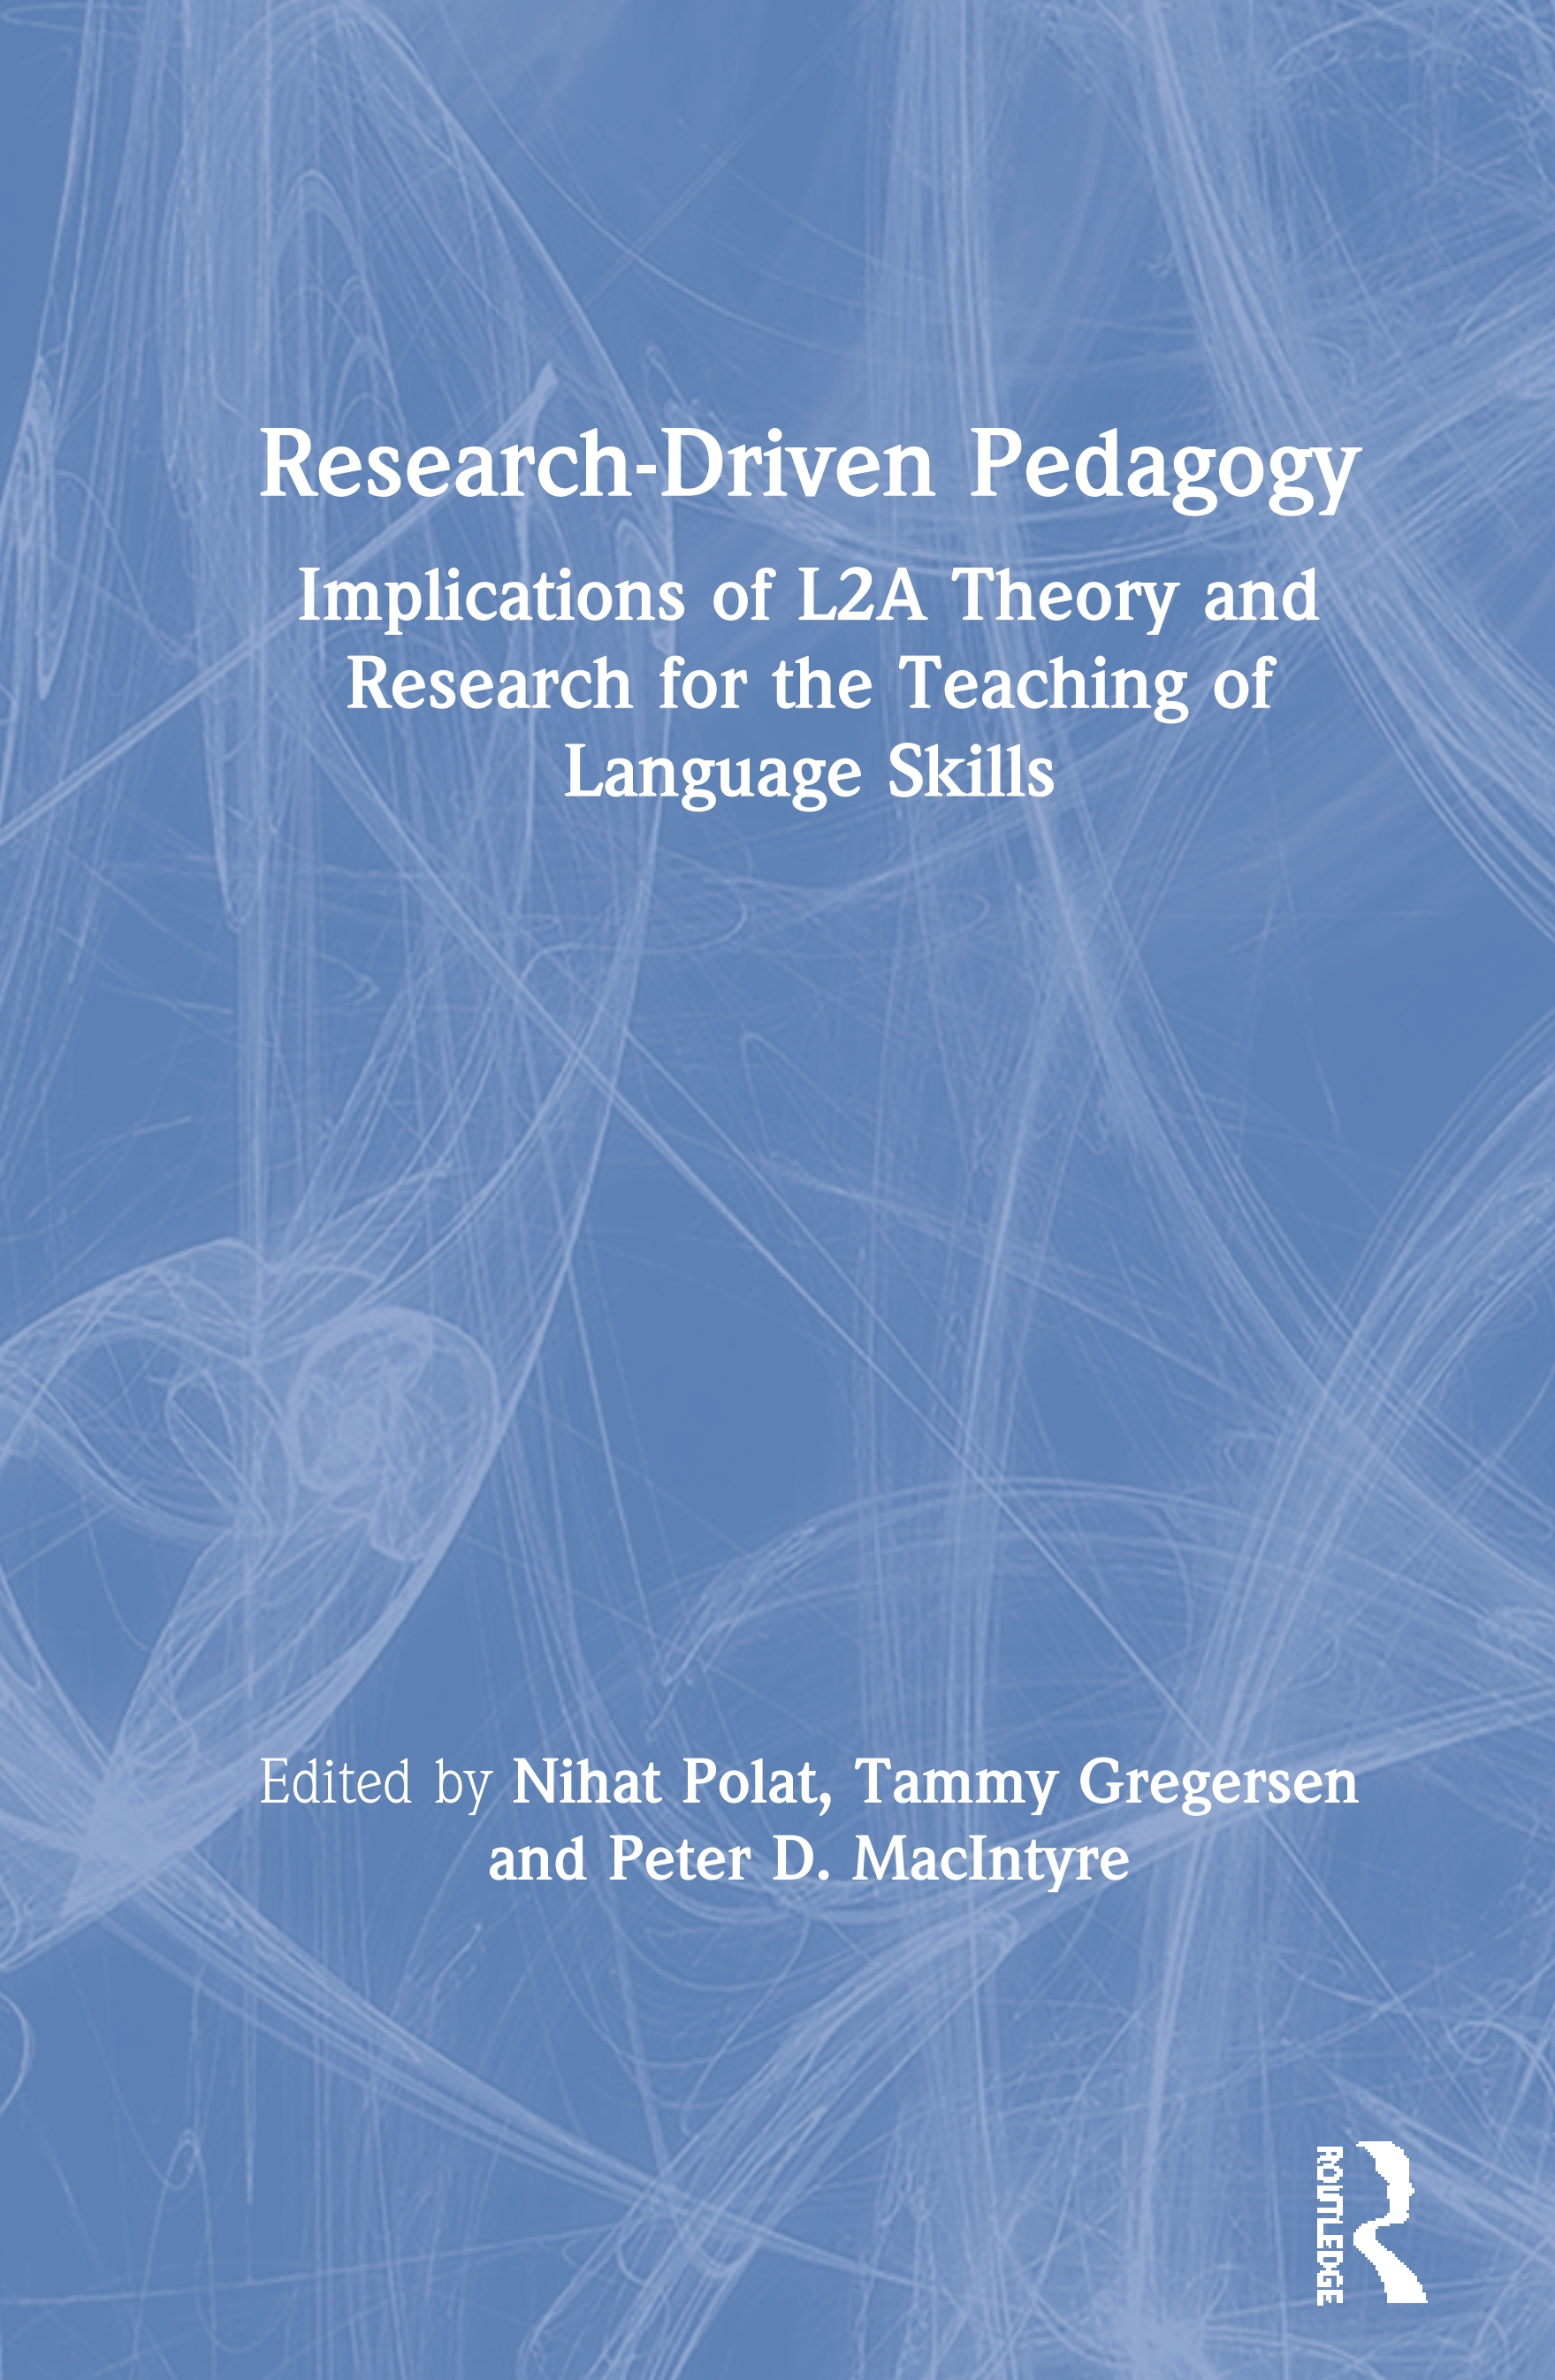 Research-Driven Pedagogy: Implications of L2A Theory and Research for the Teaching of Language Skills book cover